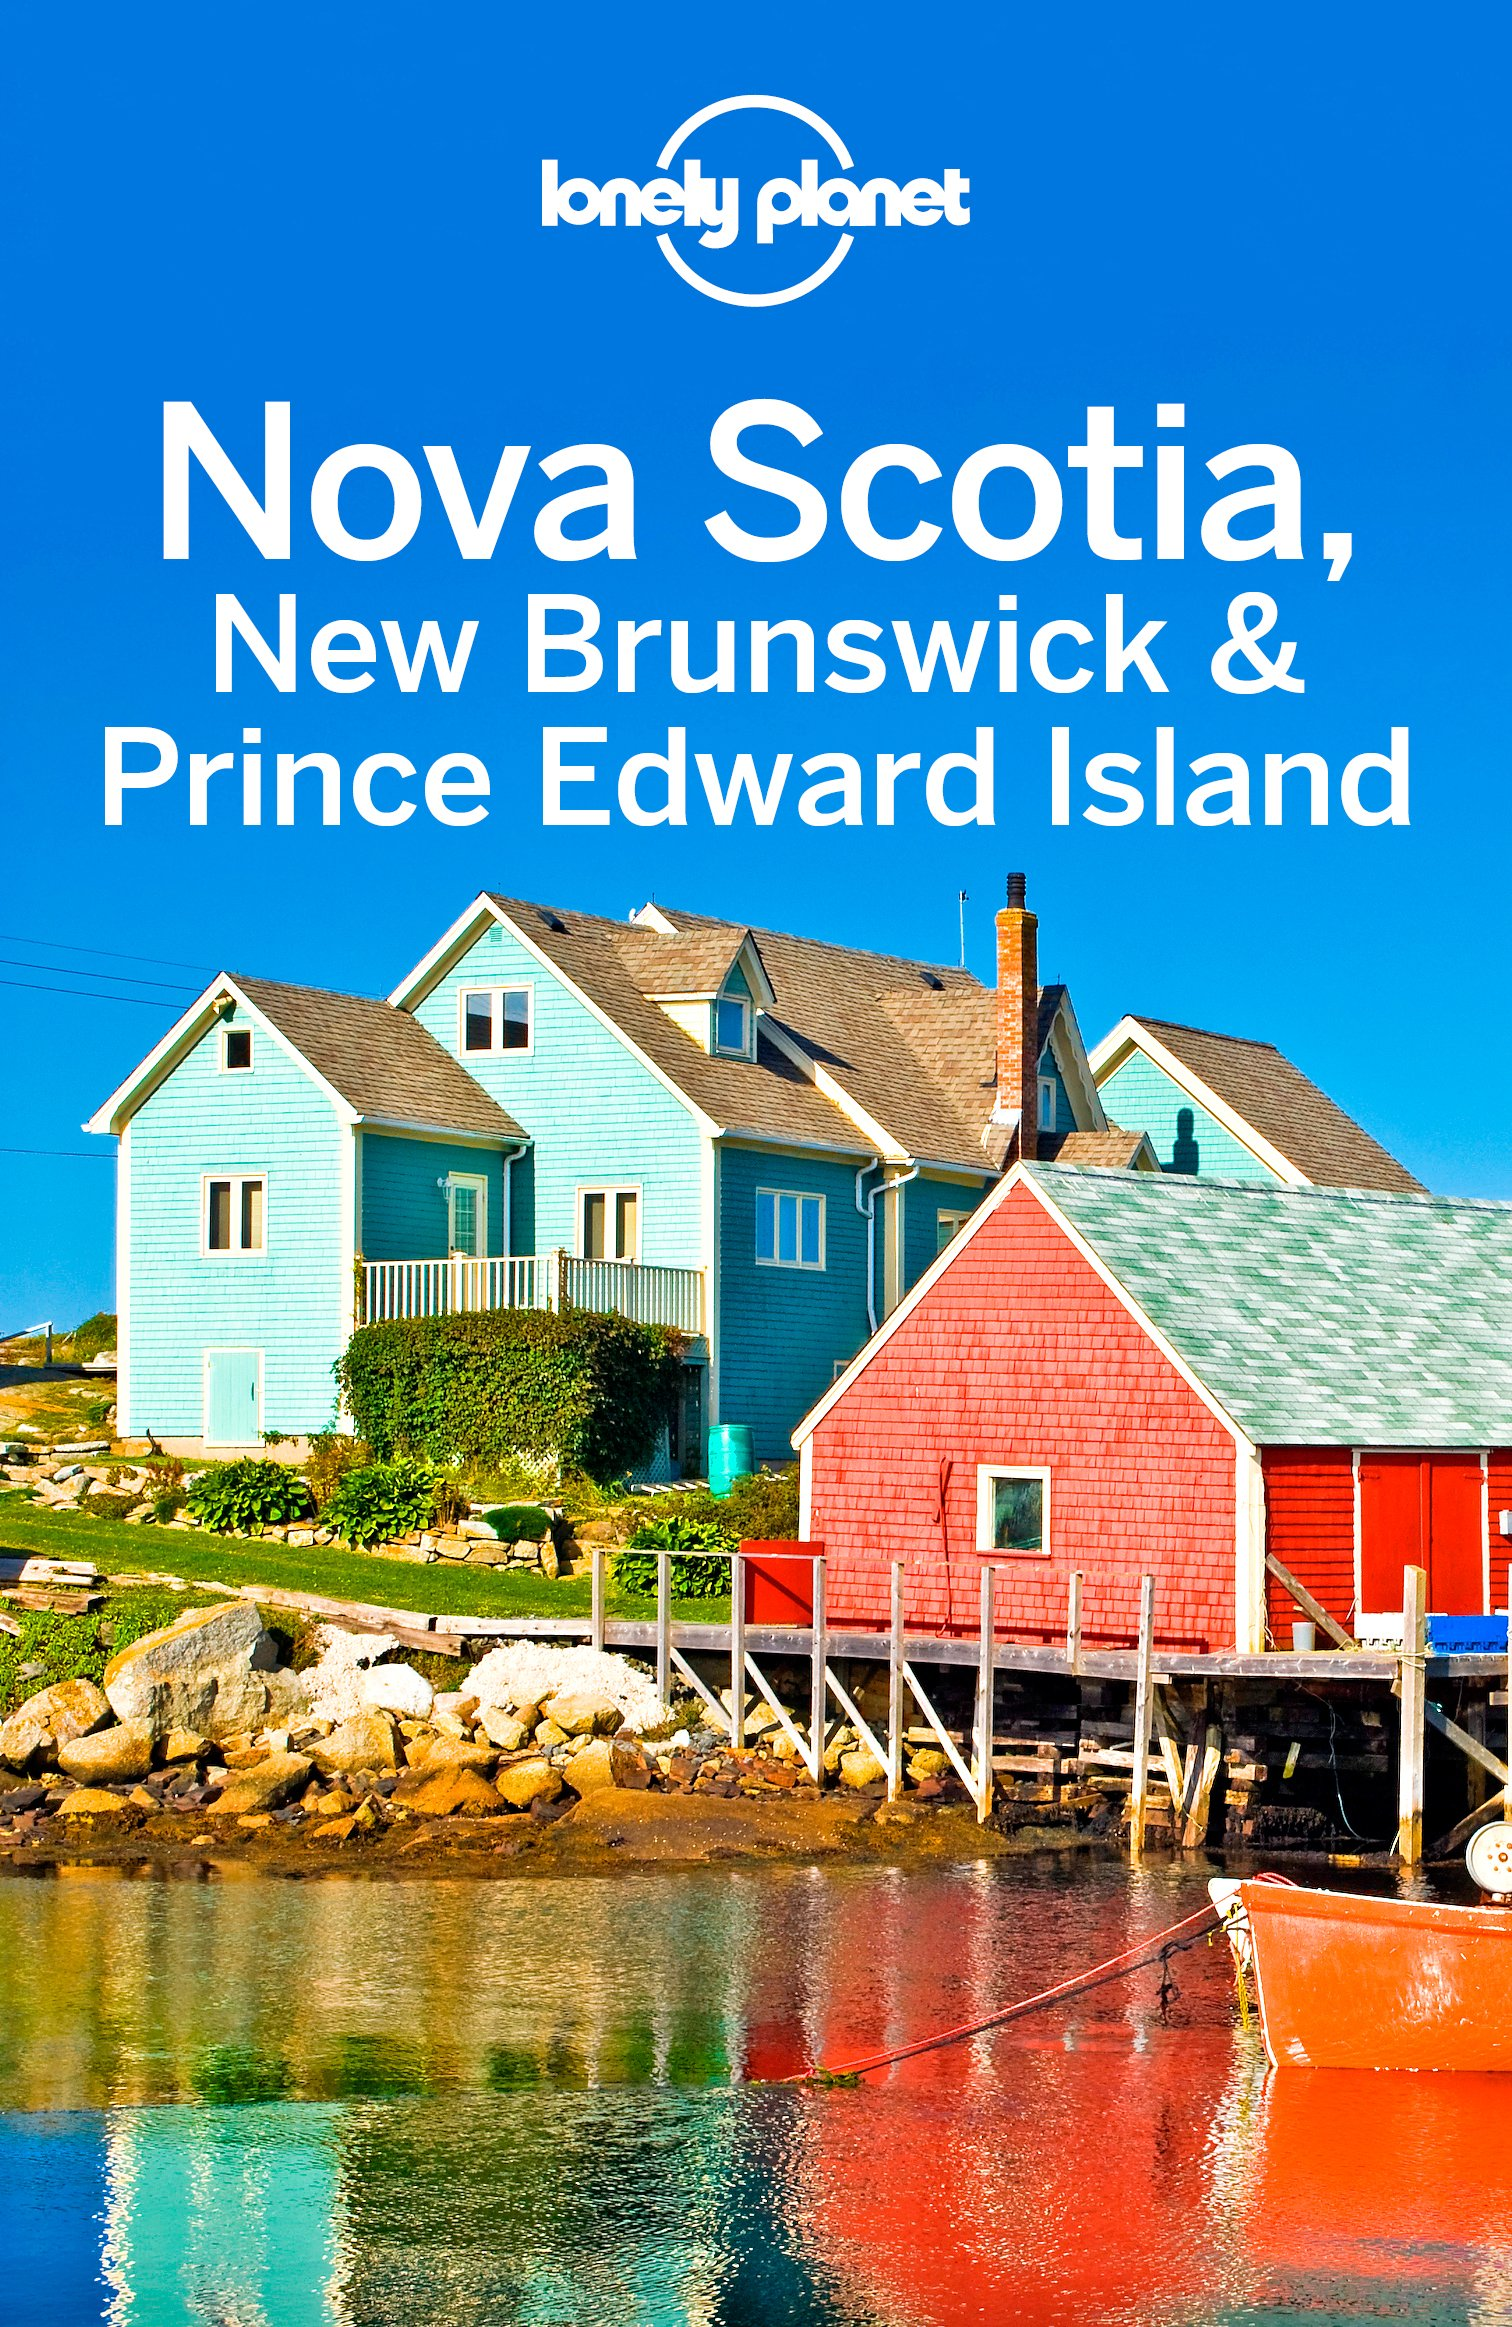 Lonely Planet Nova Scotia New Brunswick And Prince Edward Island  Travel Guide   English Edition